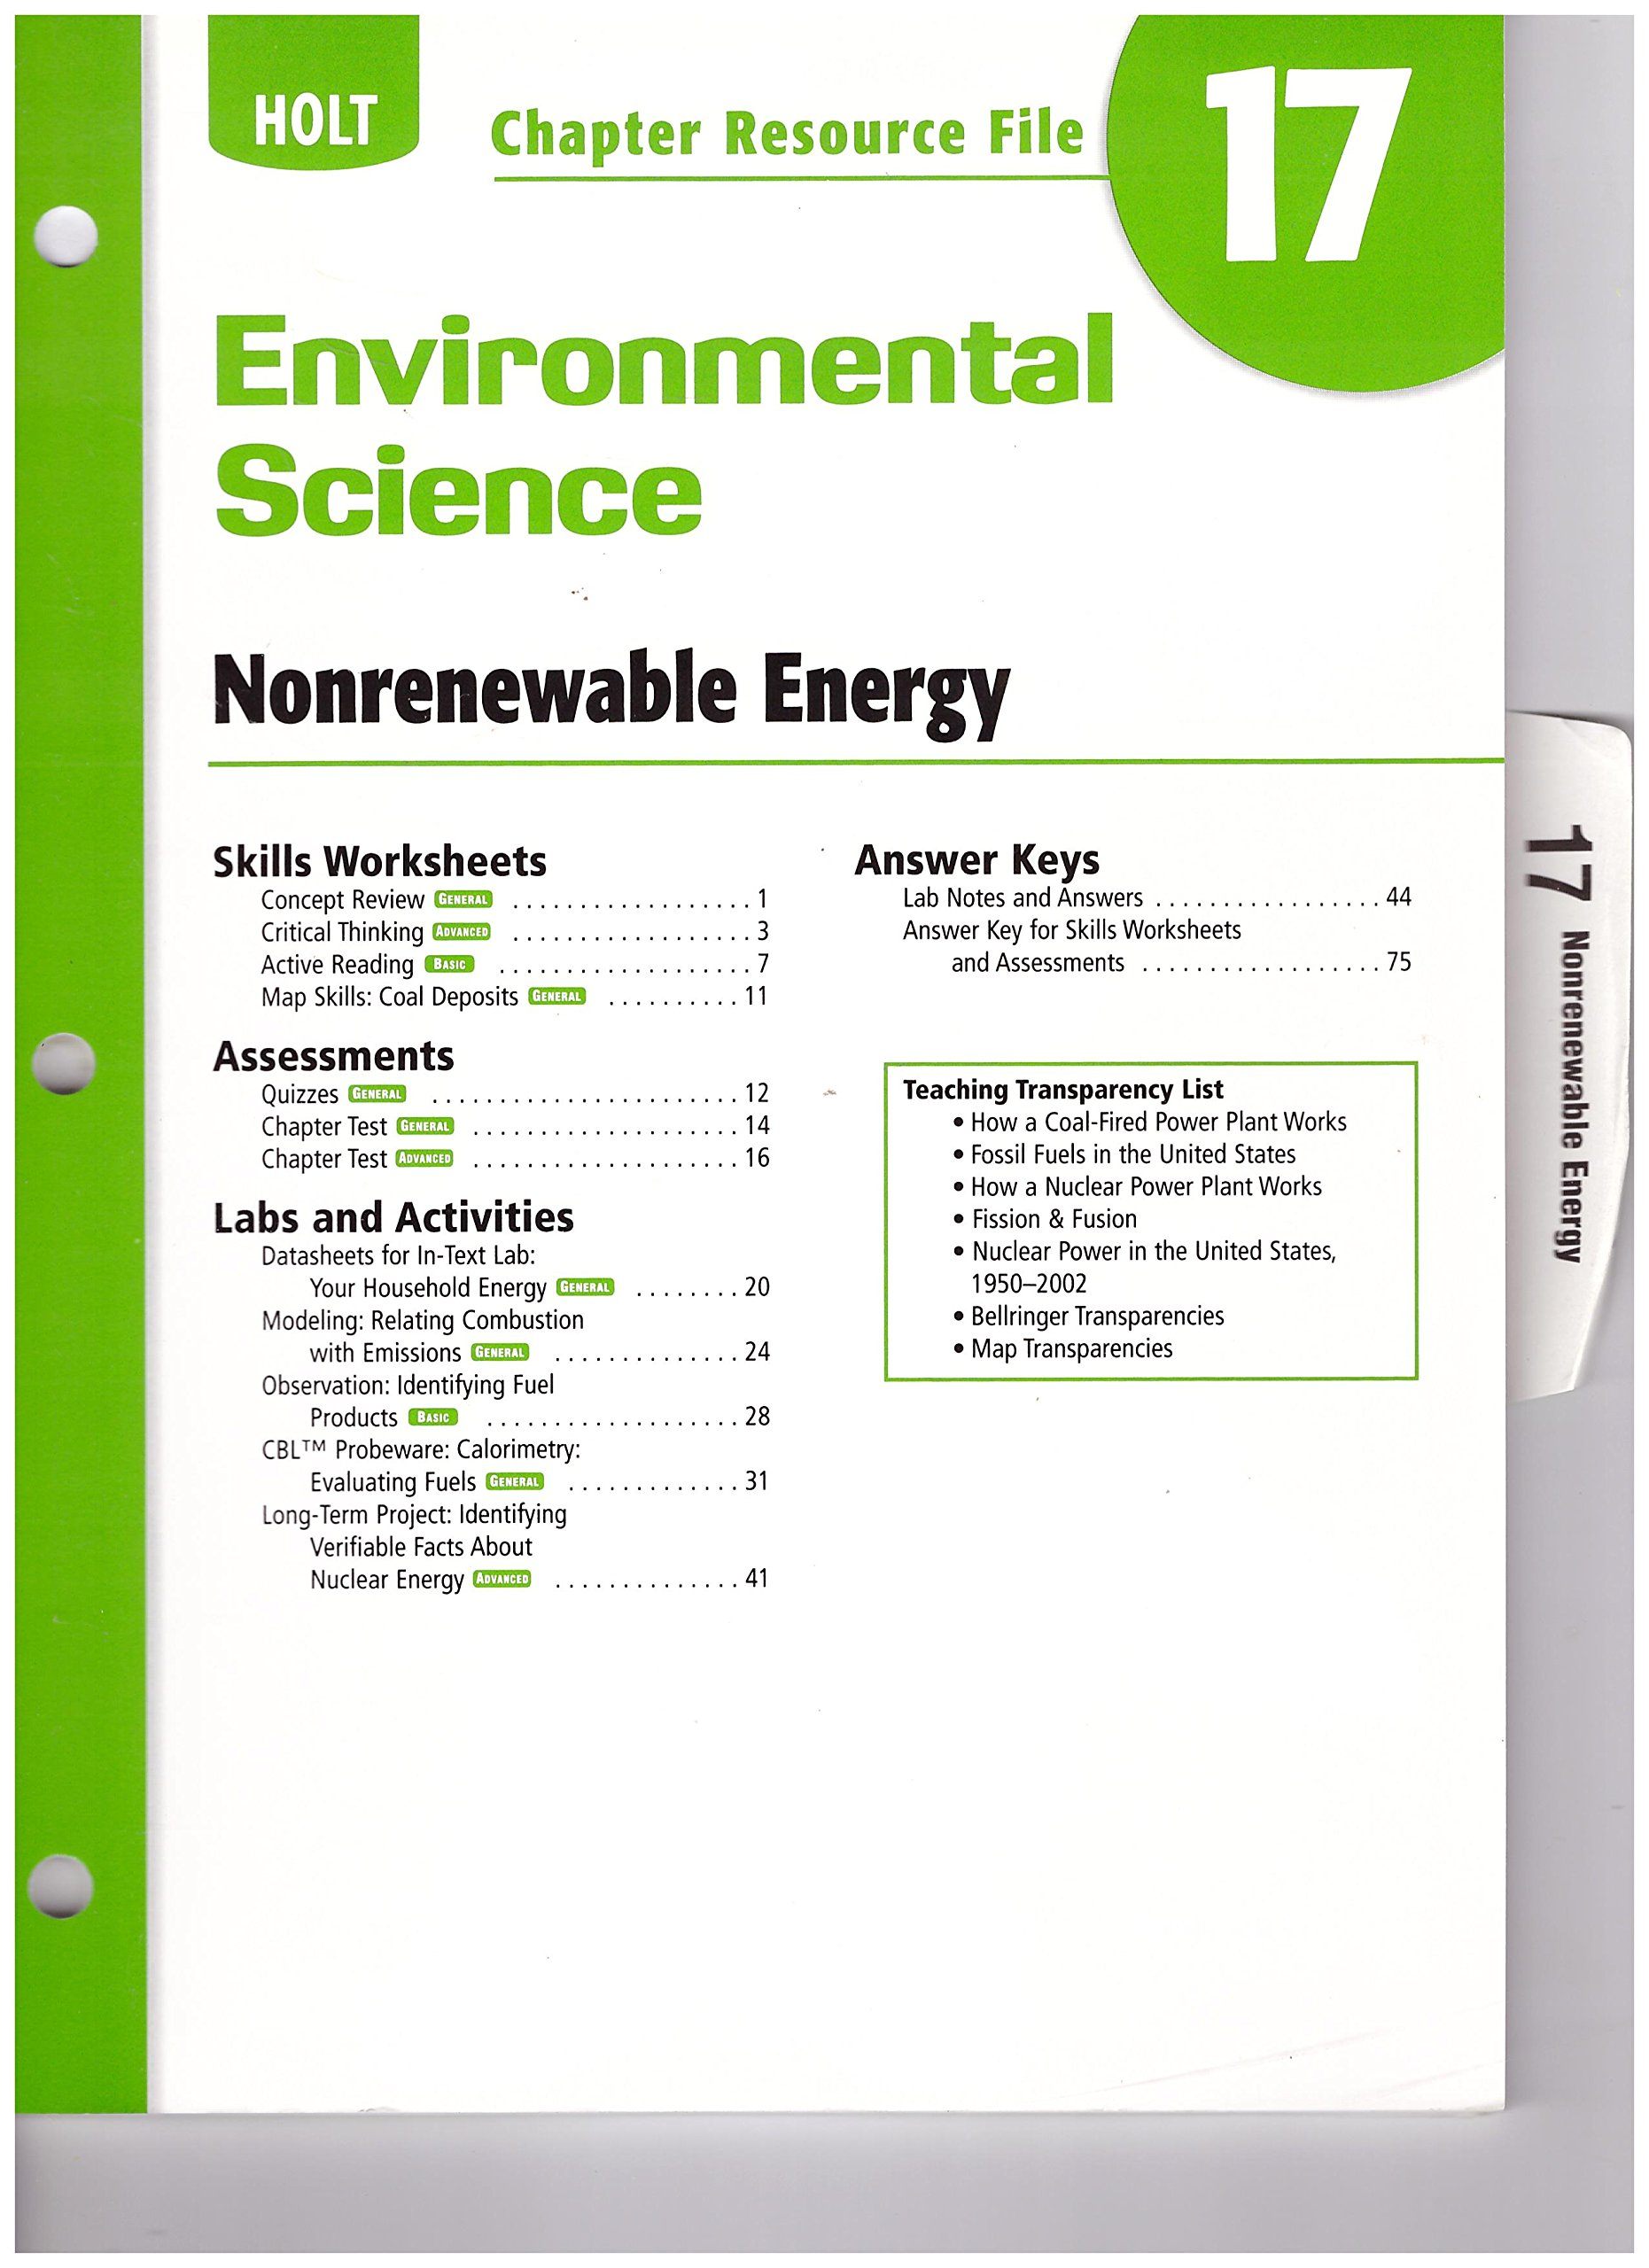 Buy Holt Environmental Science Resource File: Chapter 17